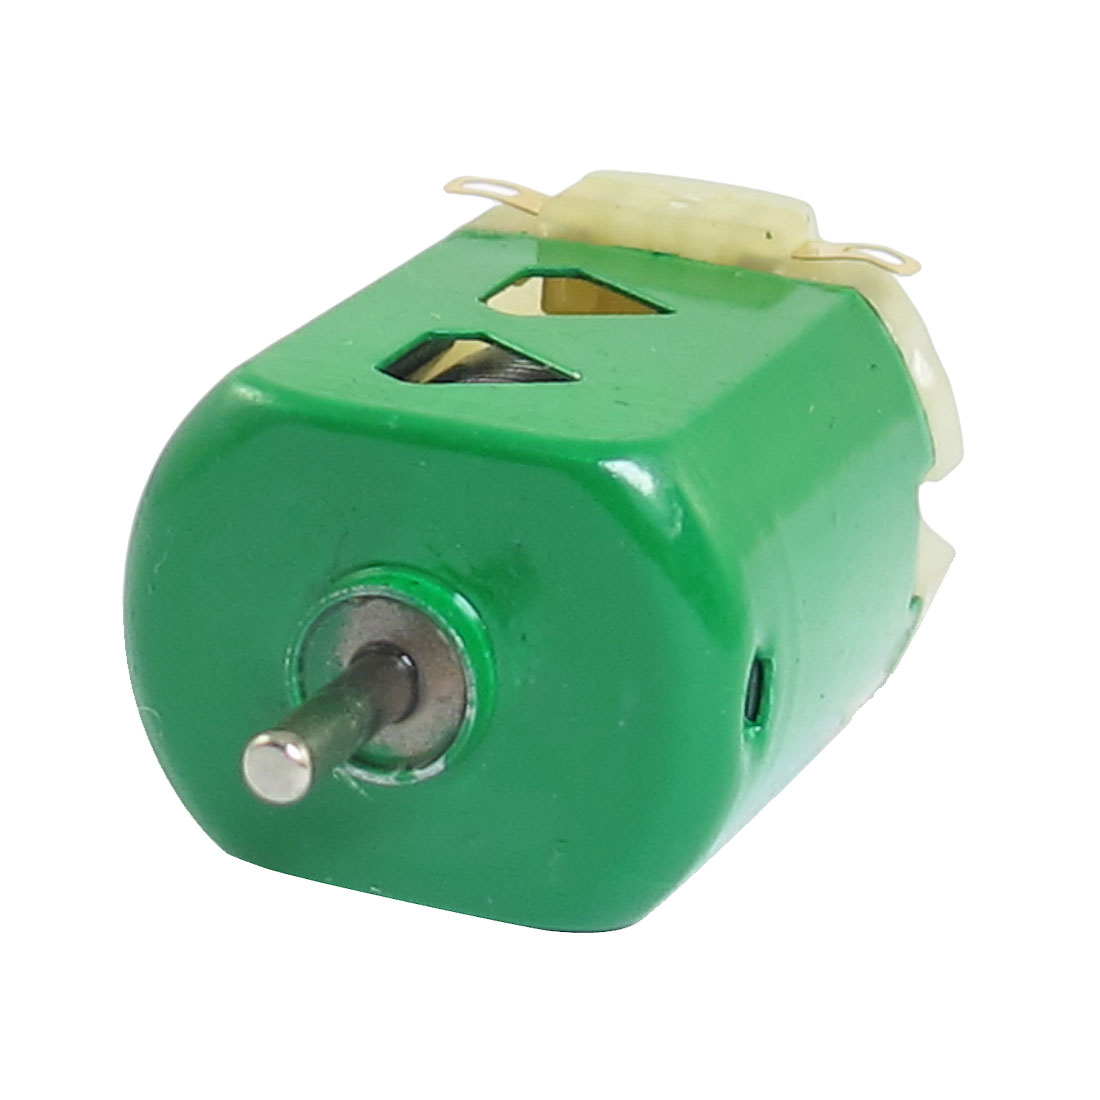 1.5V DC 9000RPM 400mA Green Flat Electric 130 Motor for Four-wheel Car